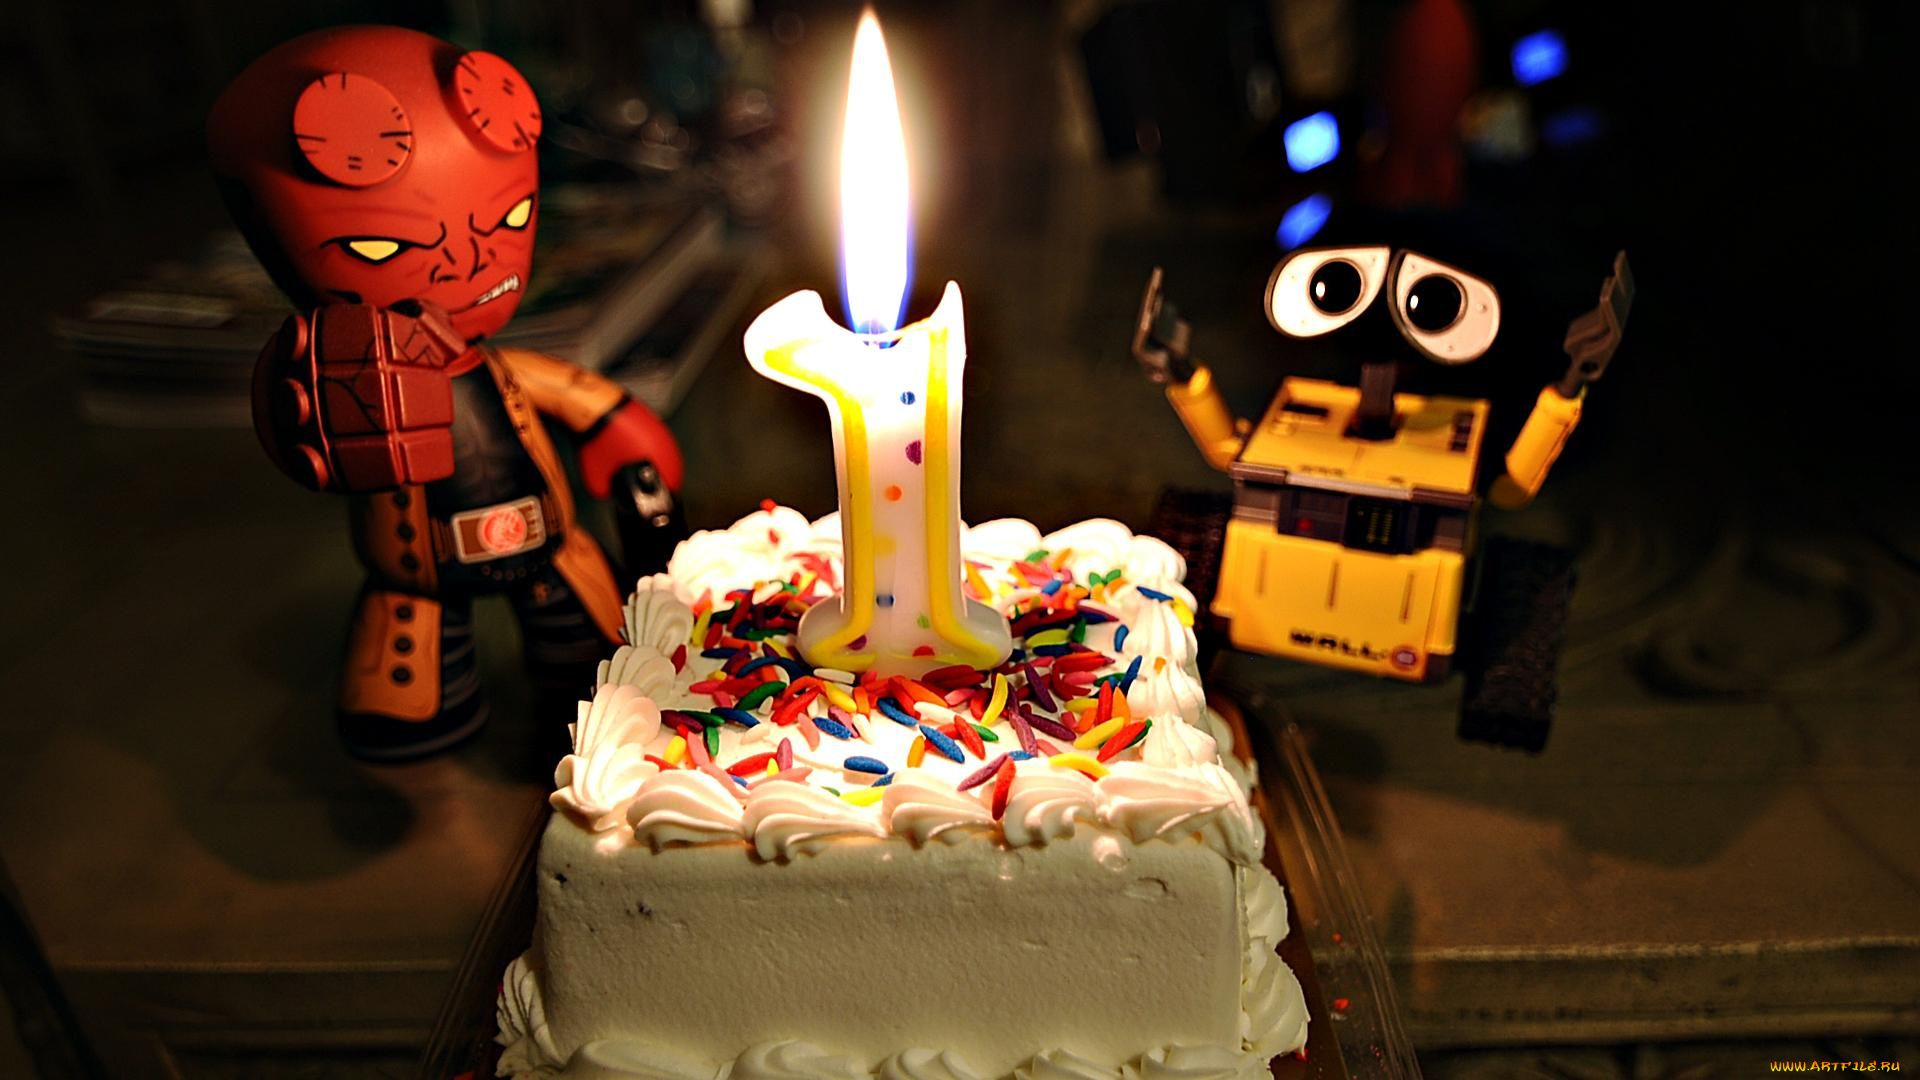 Birthday Cake download free wallpaper image search